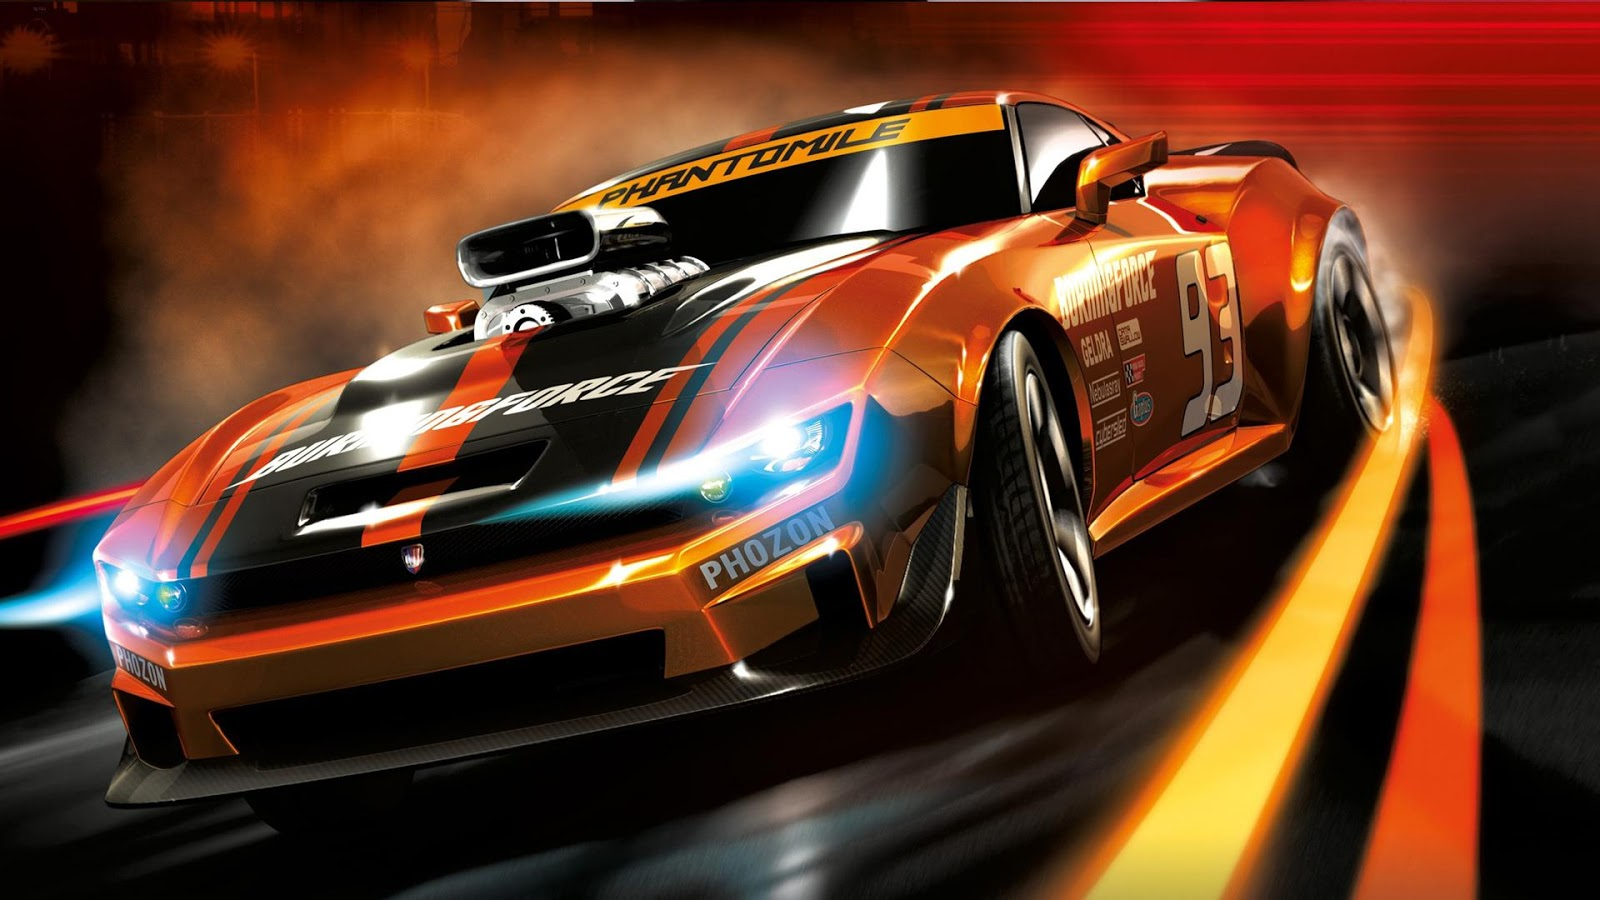 Download Racing Cars Live Wallpaper Android Apps On Google Play